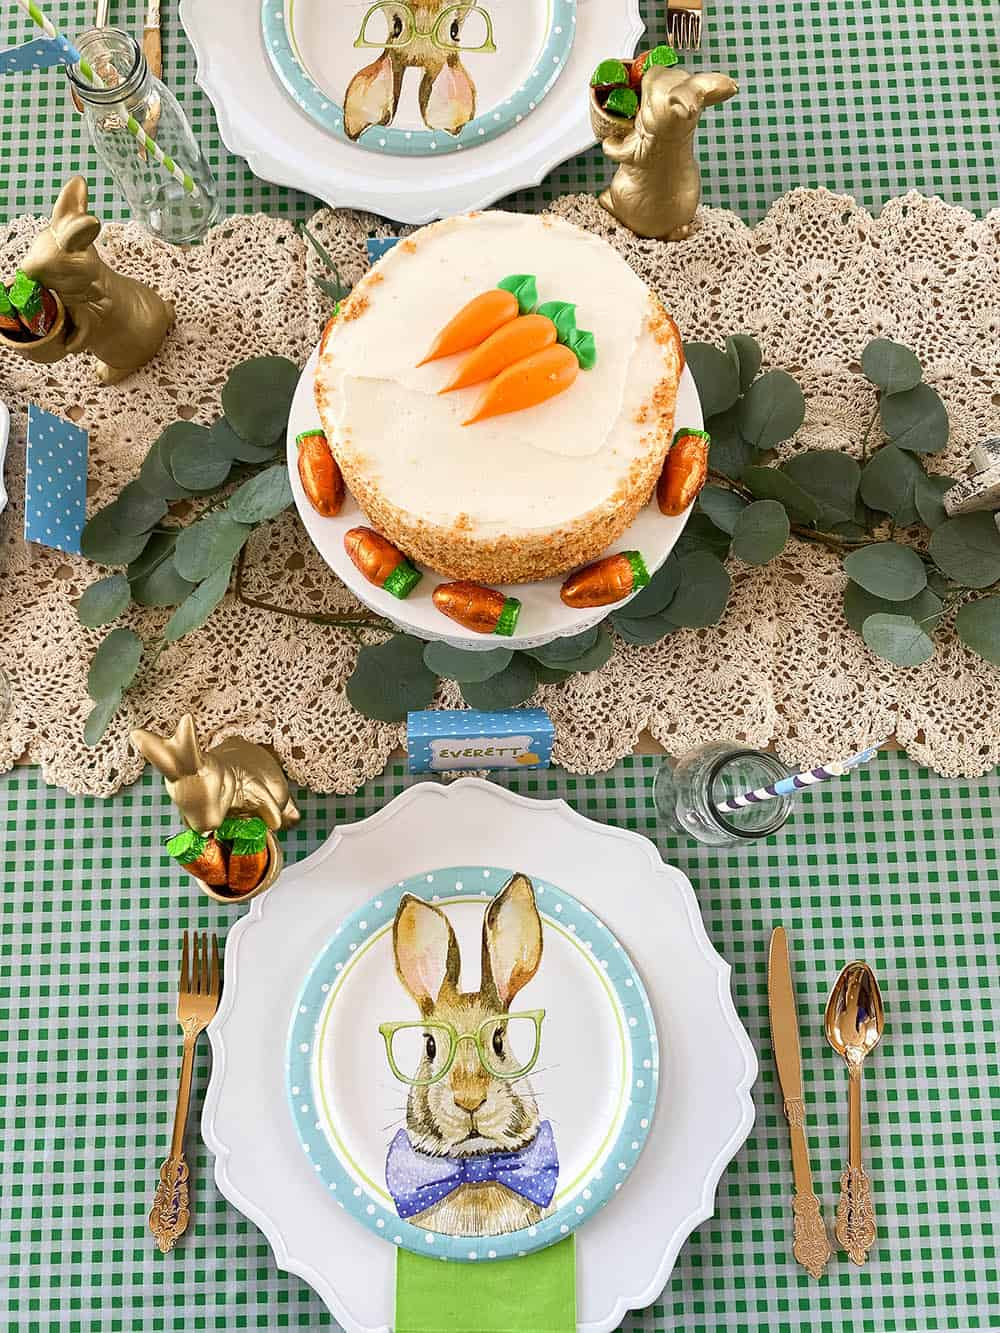 Carrot cake on Easter table